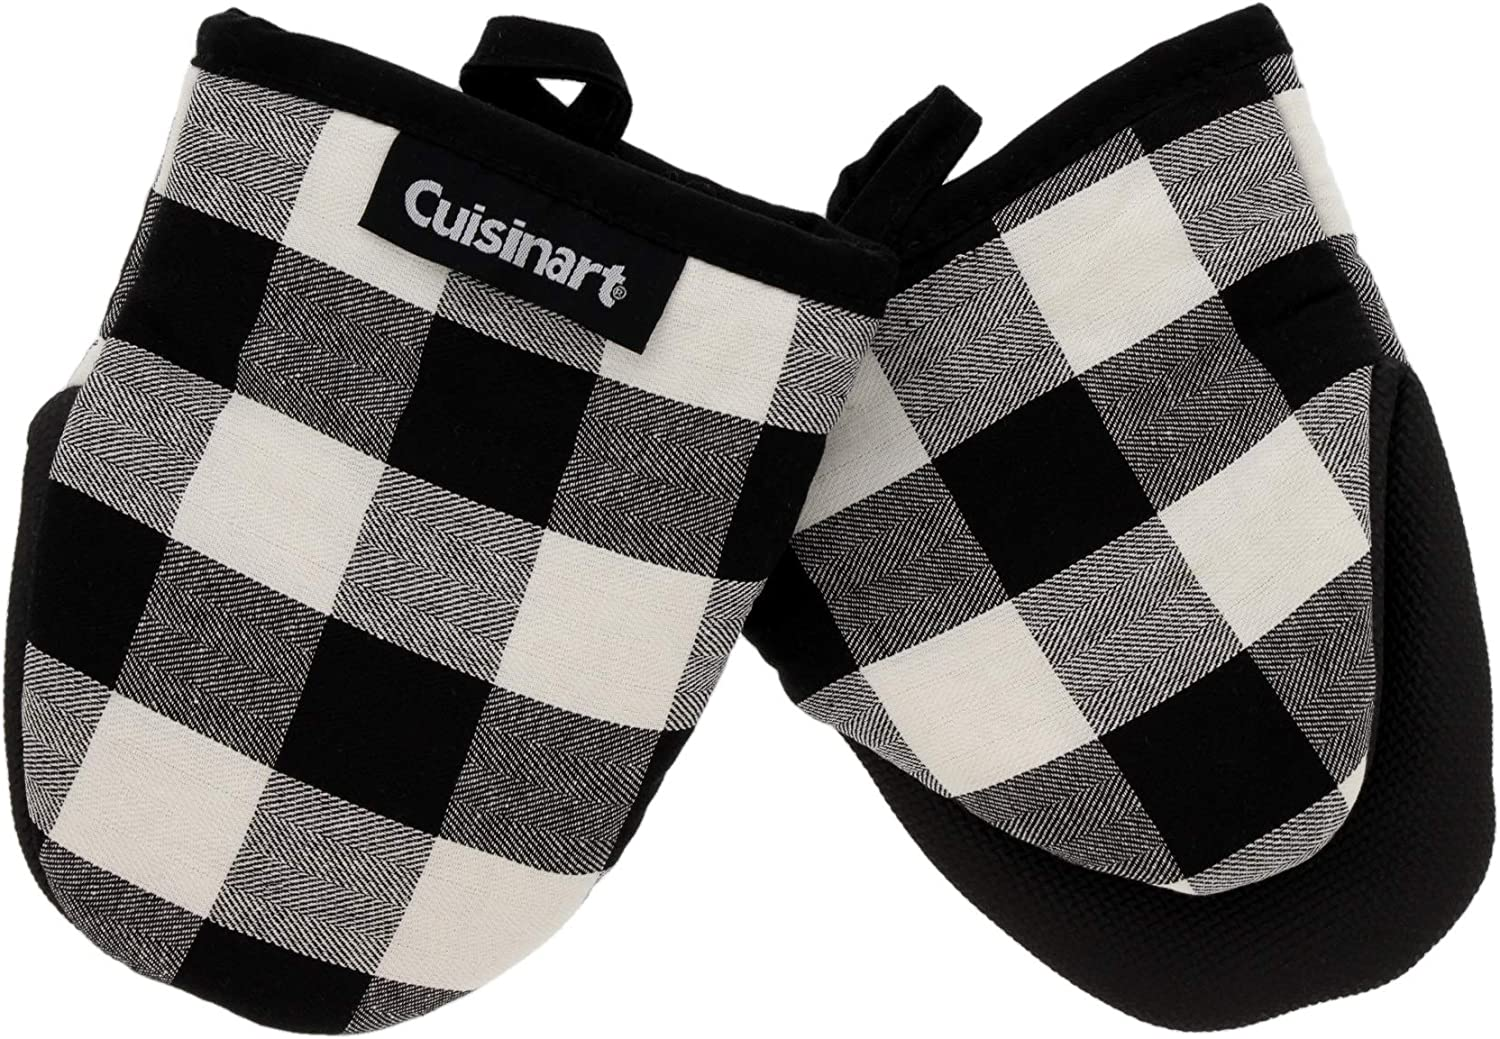 Neoprene Mini Oven Mitts, 2pk - Heat Resistant Oven Gloves Protect Hands and Surfaces with Non-Slip Grip and Hanging Loop-Ideal Set for Handling Hot Cookware - Buffalo Check, Black, Ivory